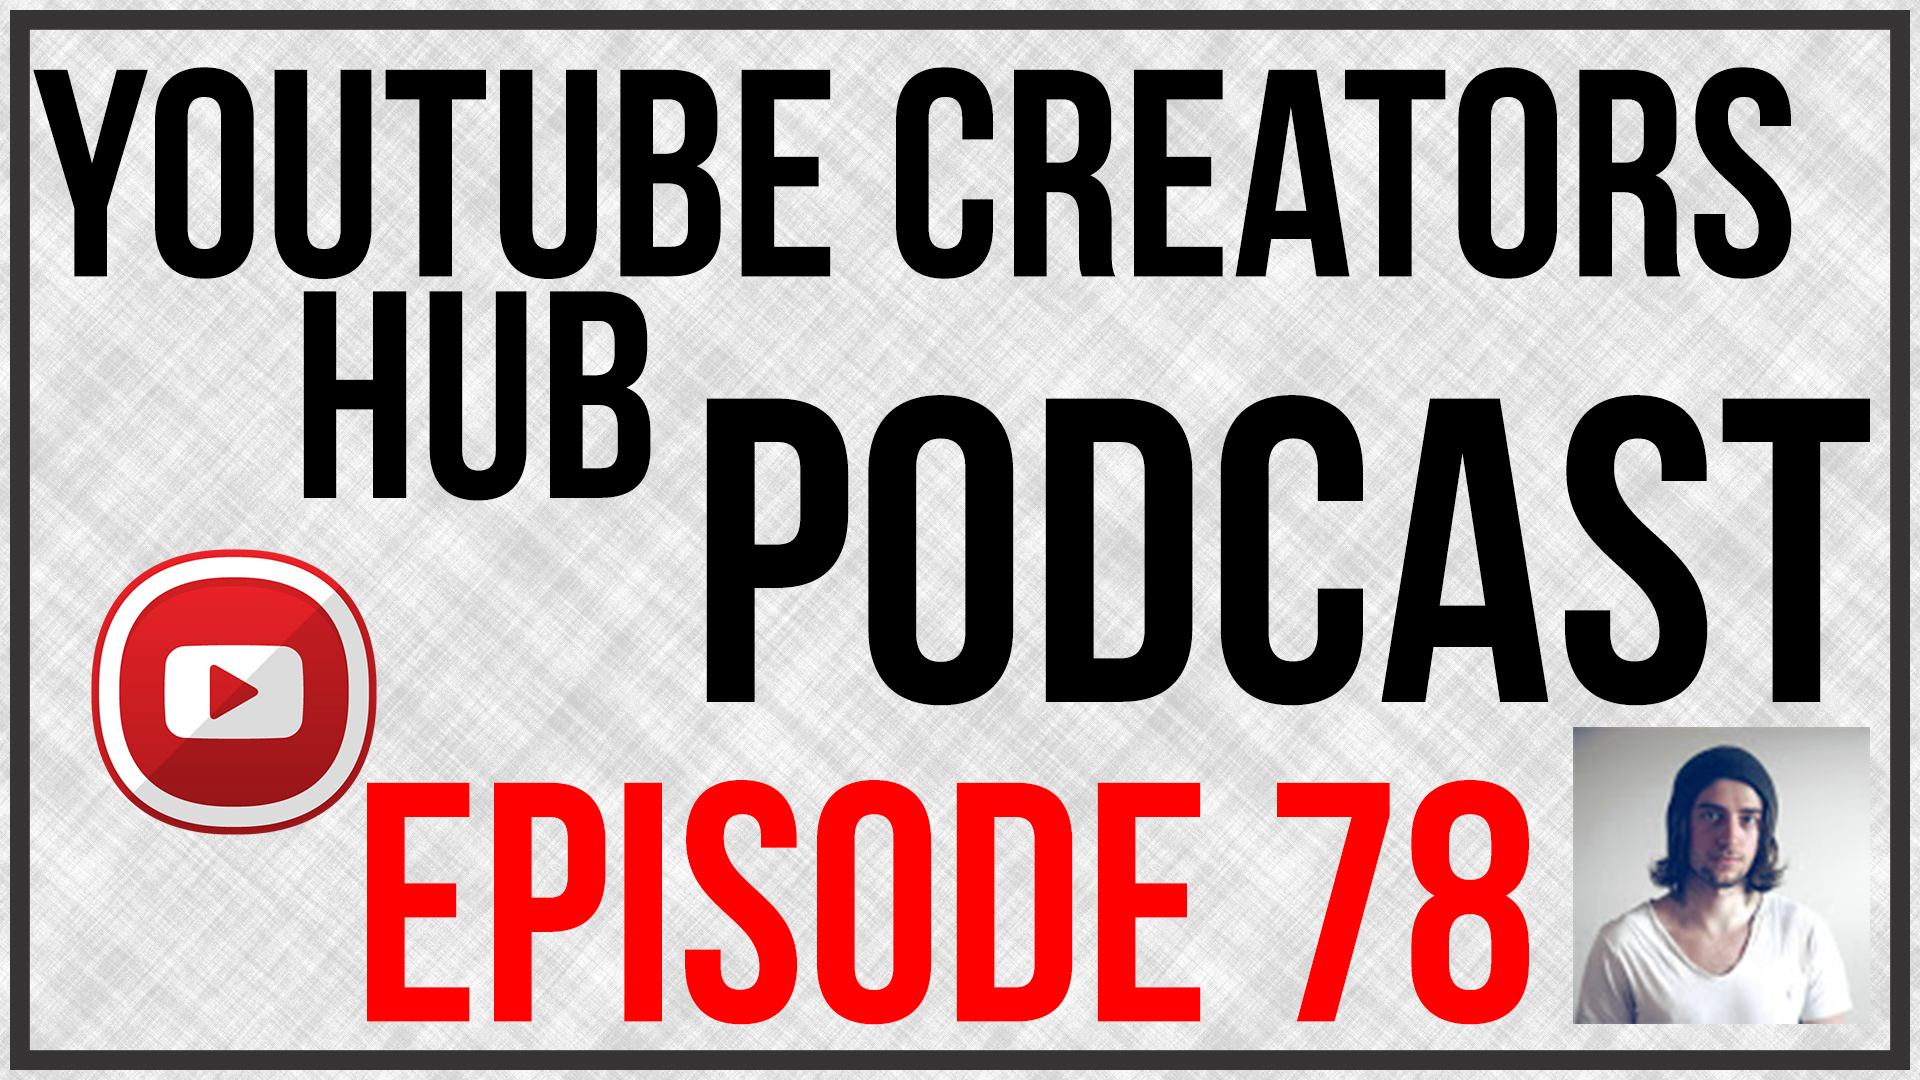 YouTube Creators Hub Podcast Episode 78